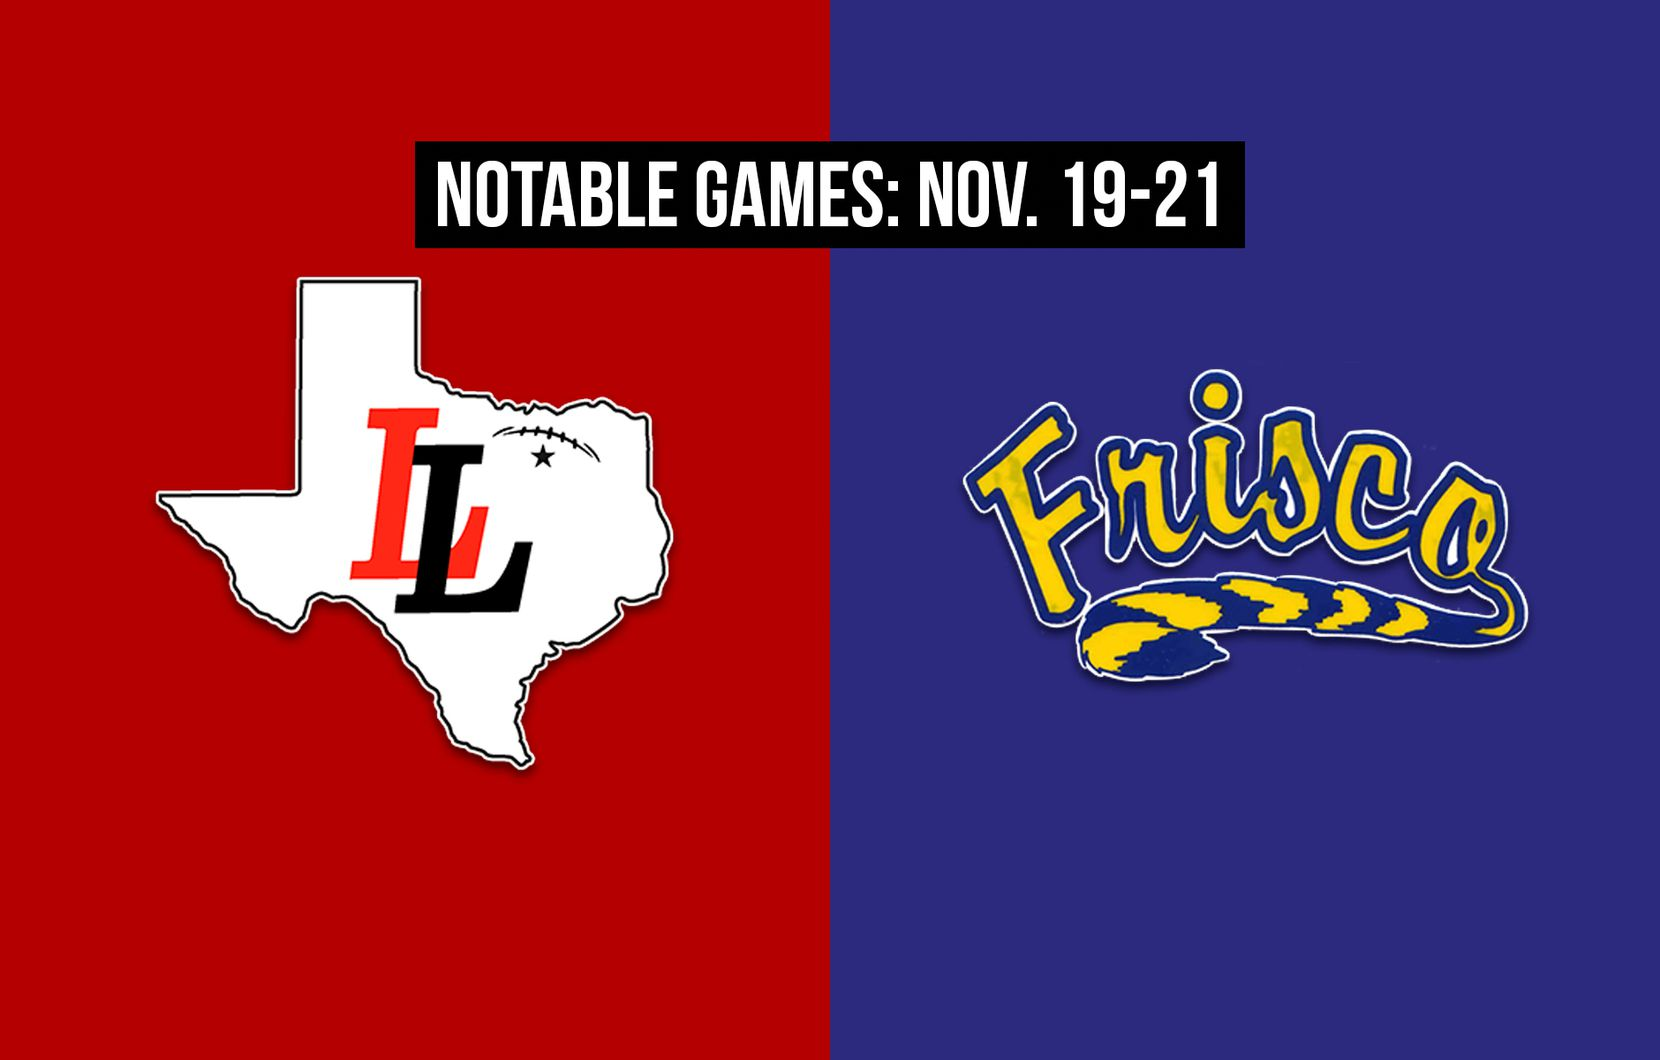 Notable games for the week of Nov. 19-21 of the 2020 season: Lovejoy vs. Frisco.